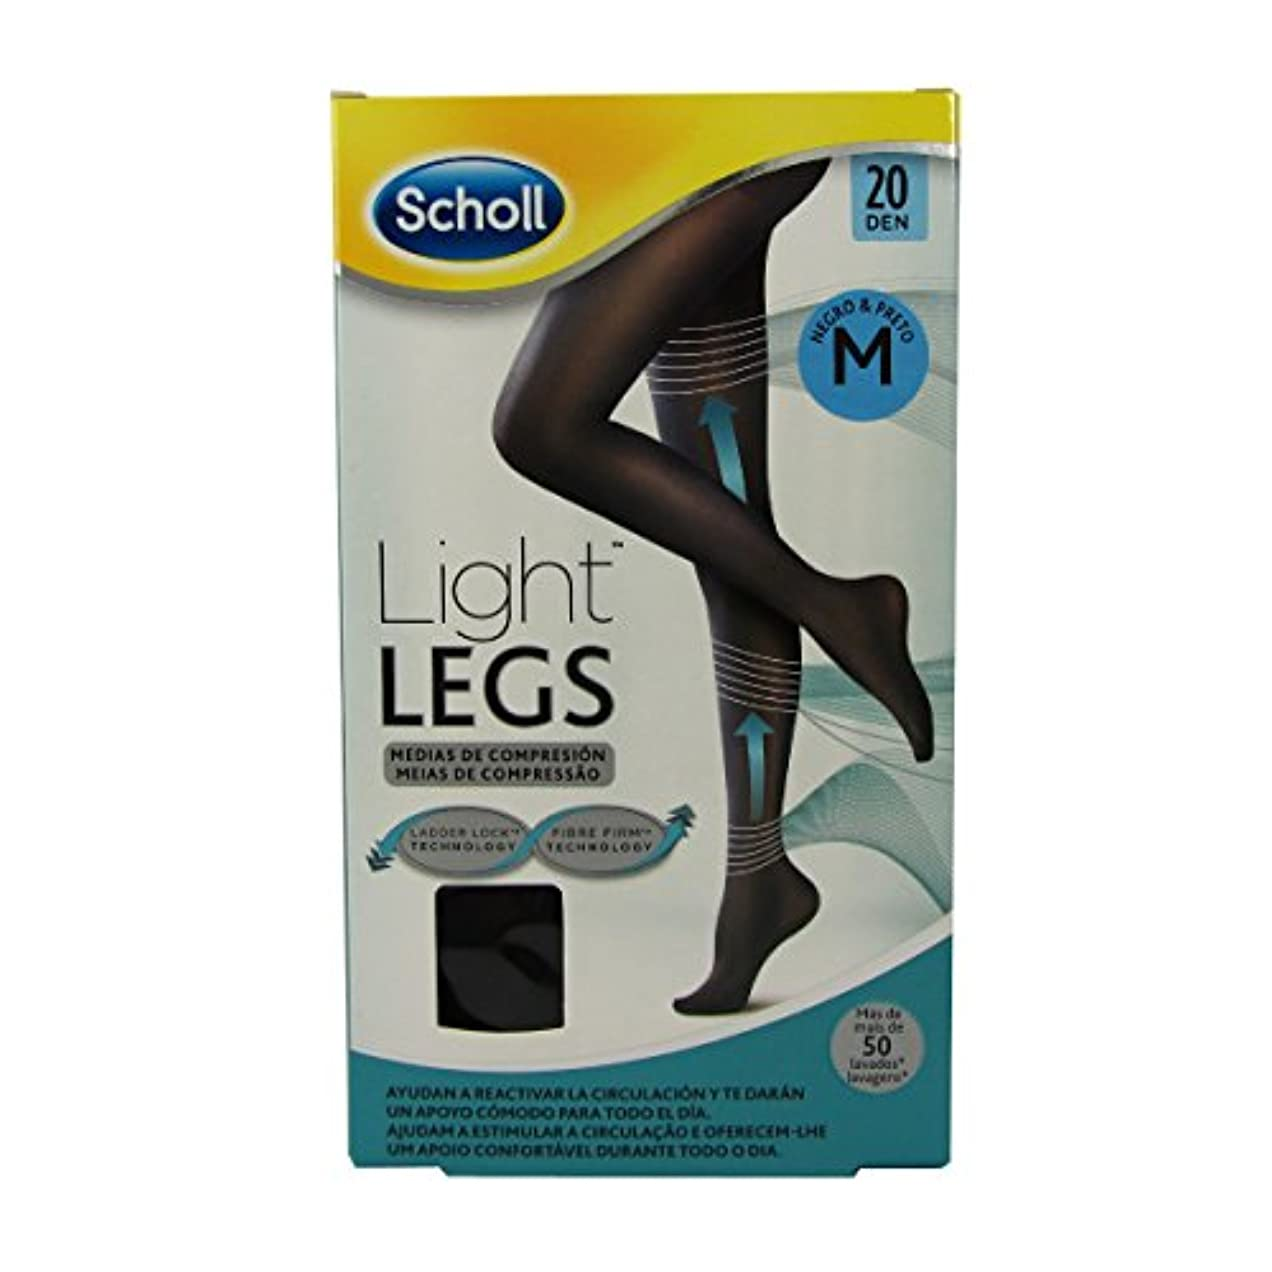 創傷ポジション免疫するScholl Light Legs Compression Tights 20den Black Medium [並行輸入品]